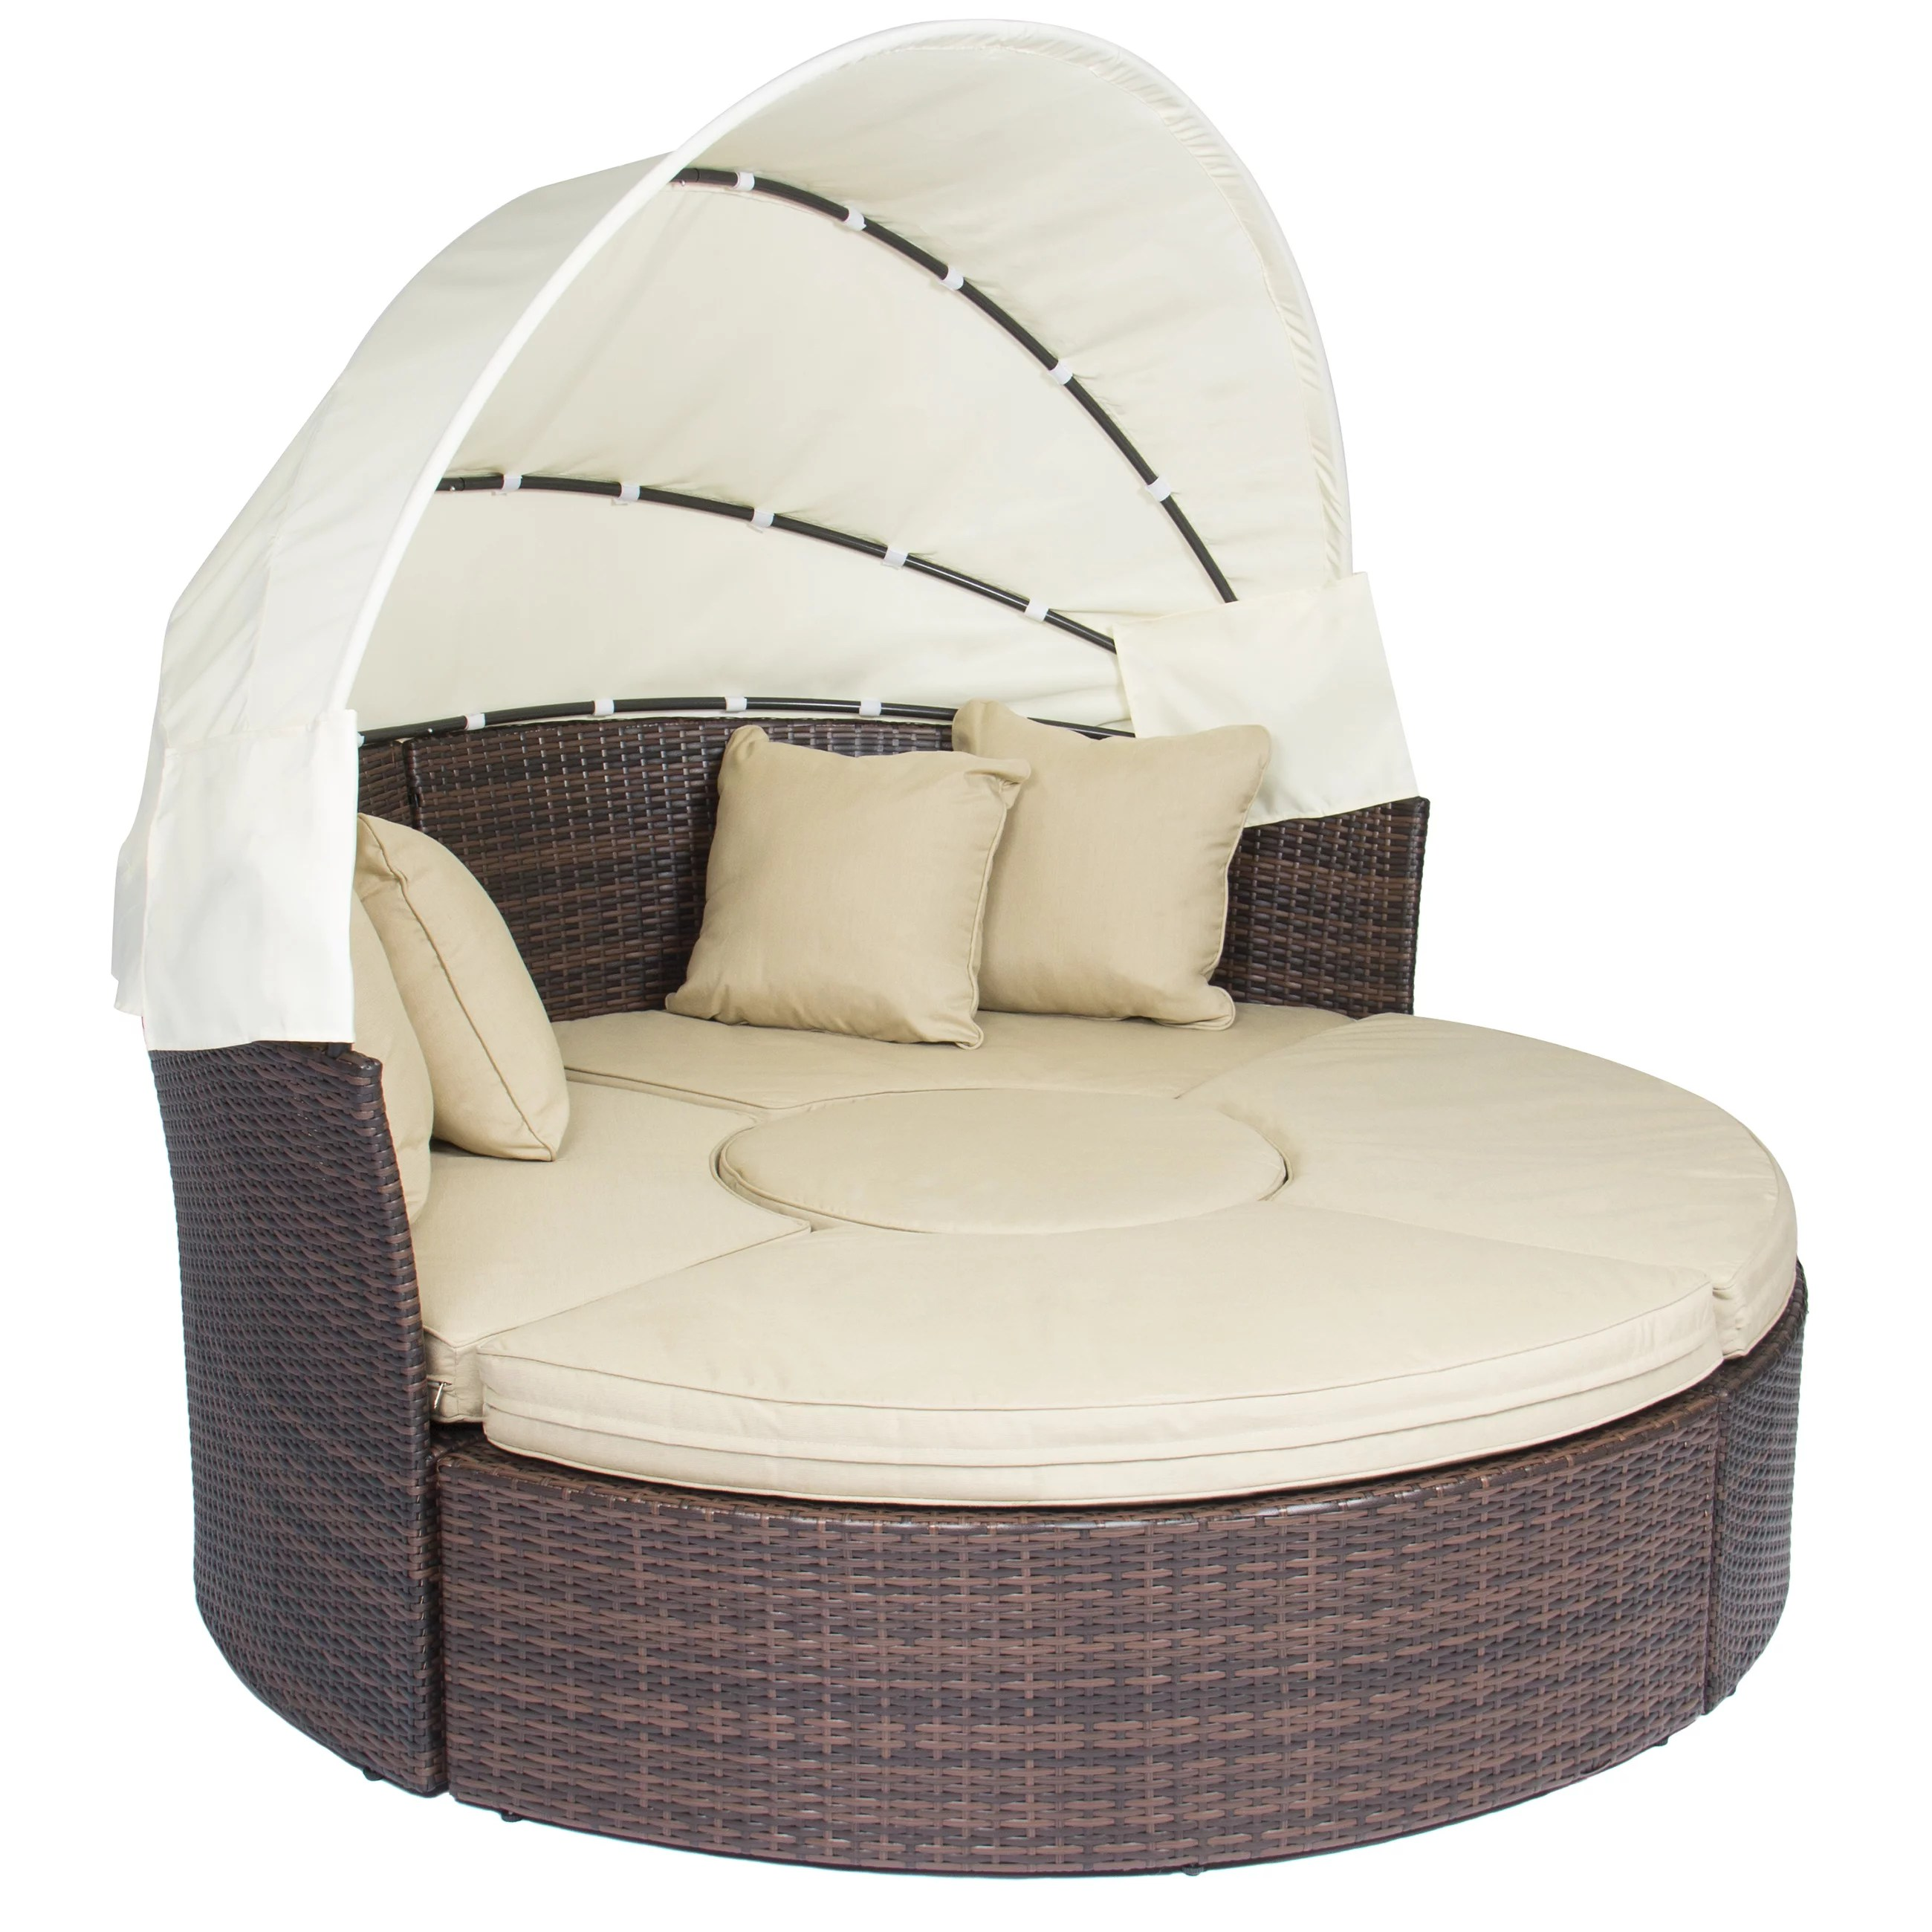 canopy daybed outdoor wicker sun sofa lounge bed for baby best choice products patio furniture round retractable brown rattan walmart com